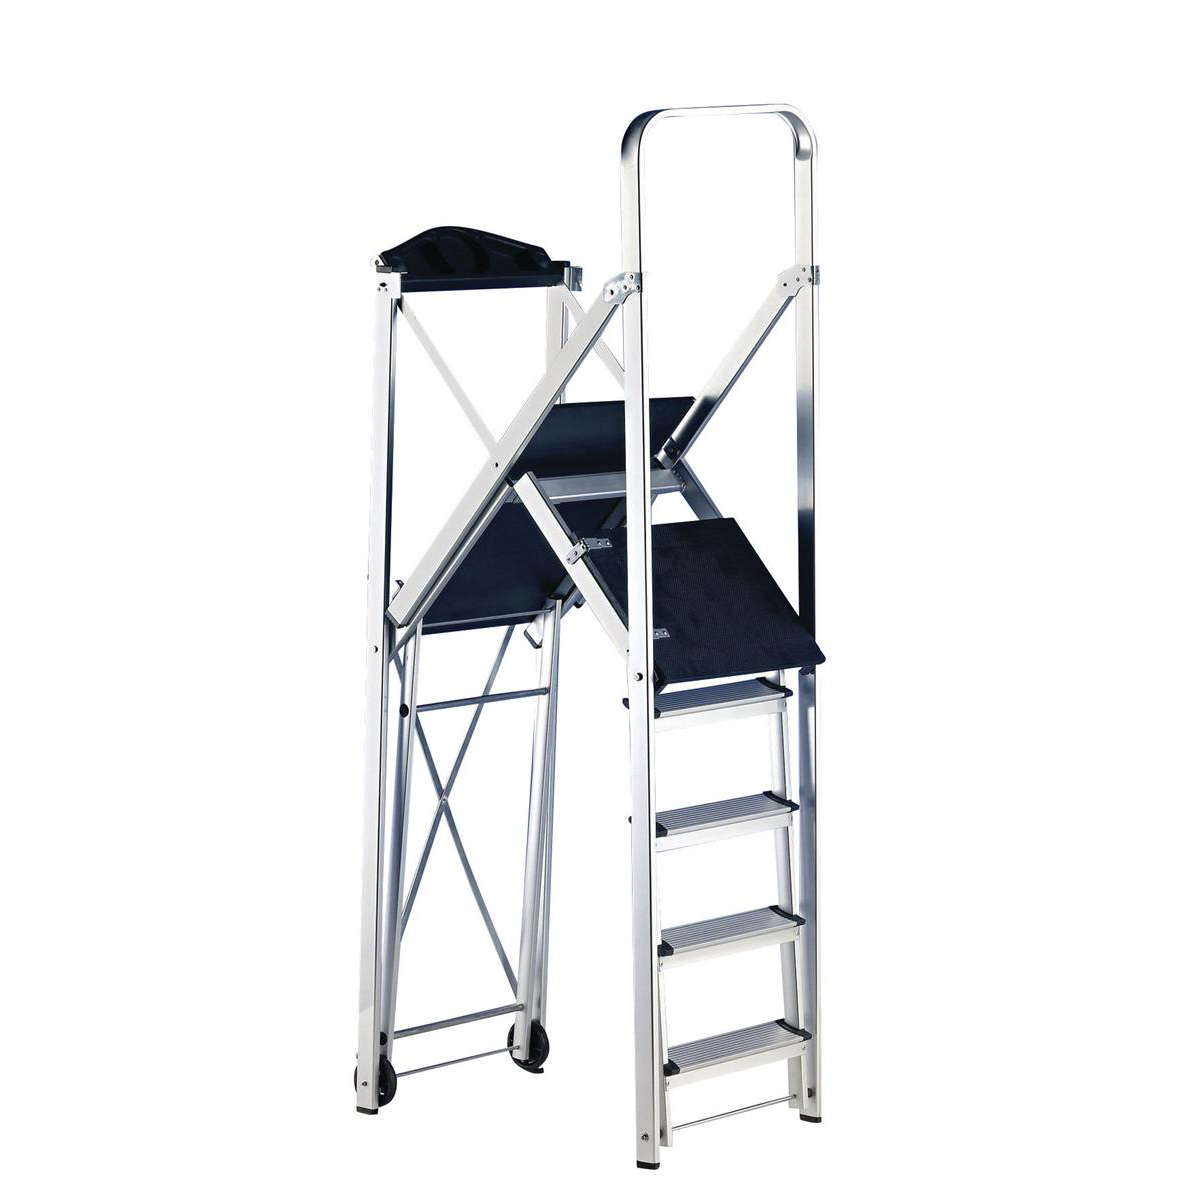 Platform Trucks Scaffolding Access Platform Flash with Fast Opening Anodised Aluminium